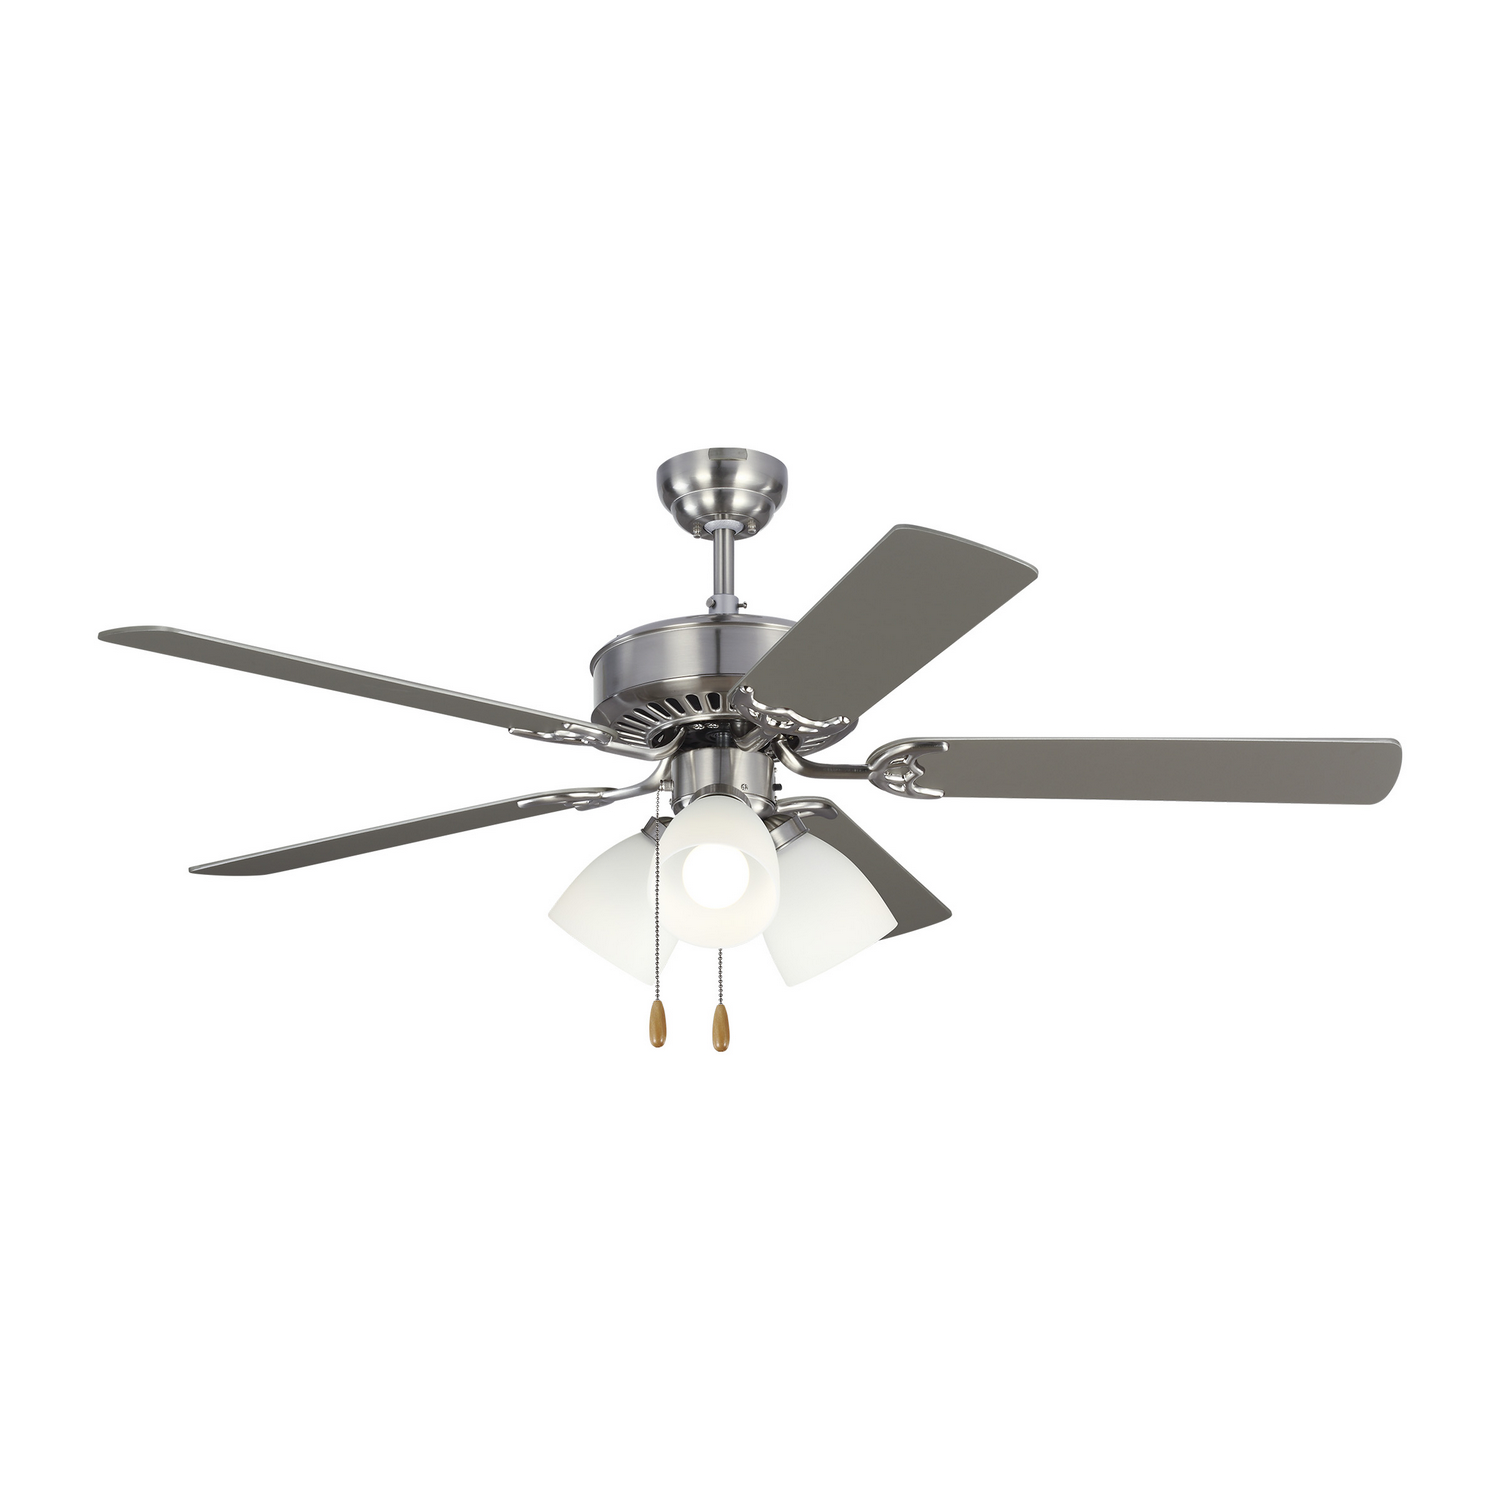 52 inchCeiling Fan from the Haven 52 LED 3 collection by Monte Carlo 5HV52BSF